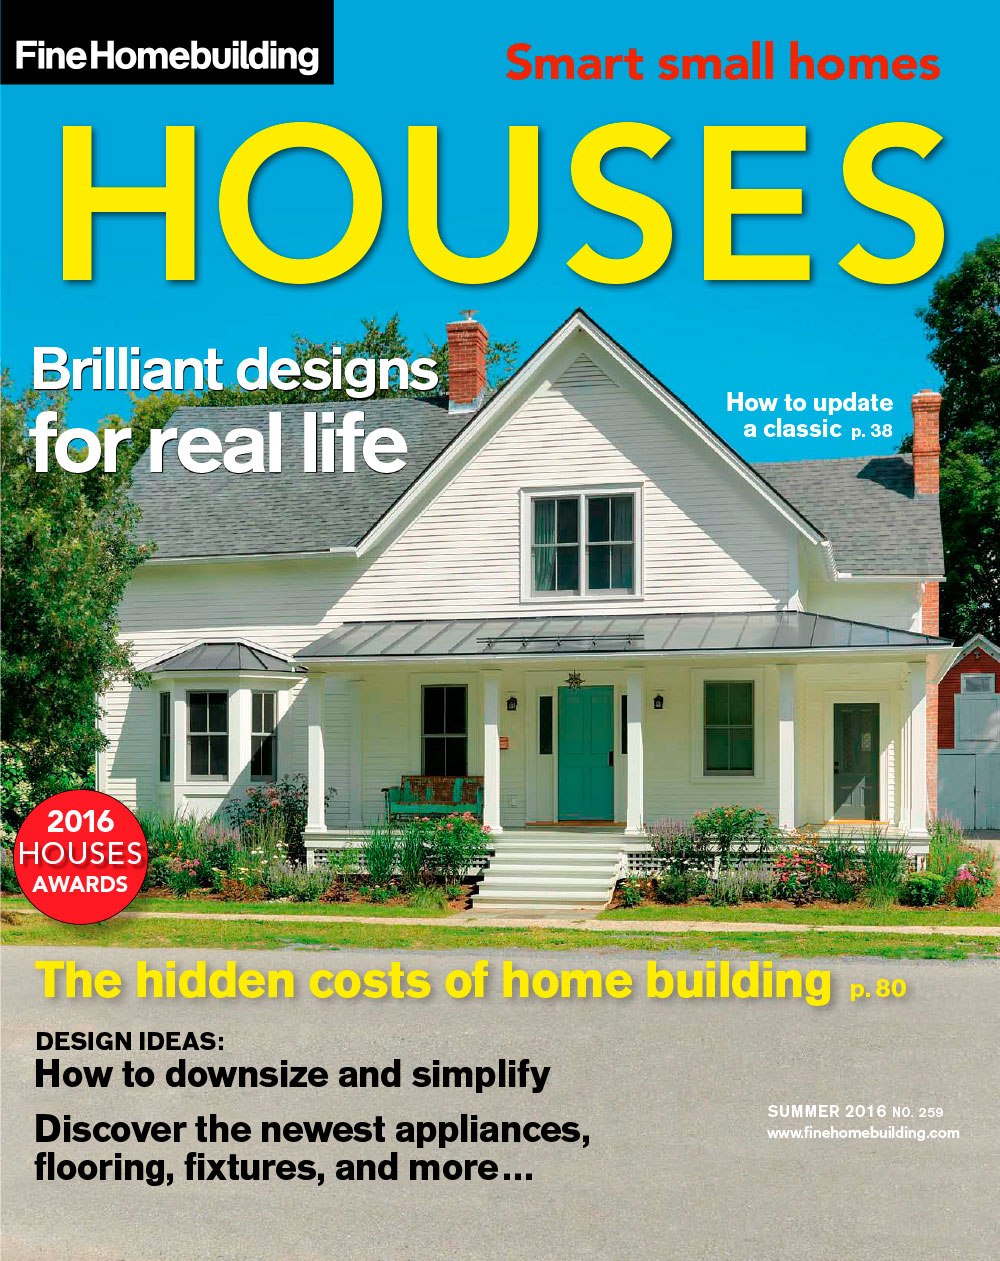 Issue 259 houses 2016 fine homebuilding for Homebuilding com